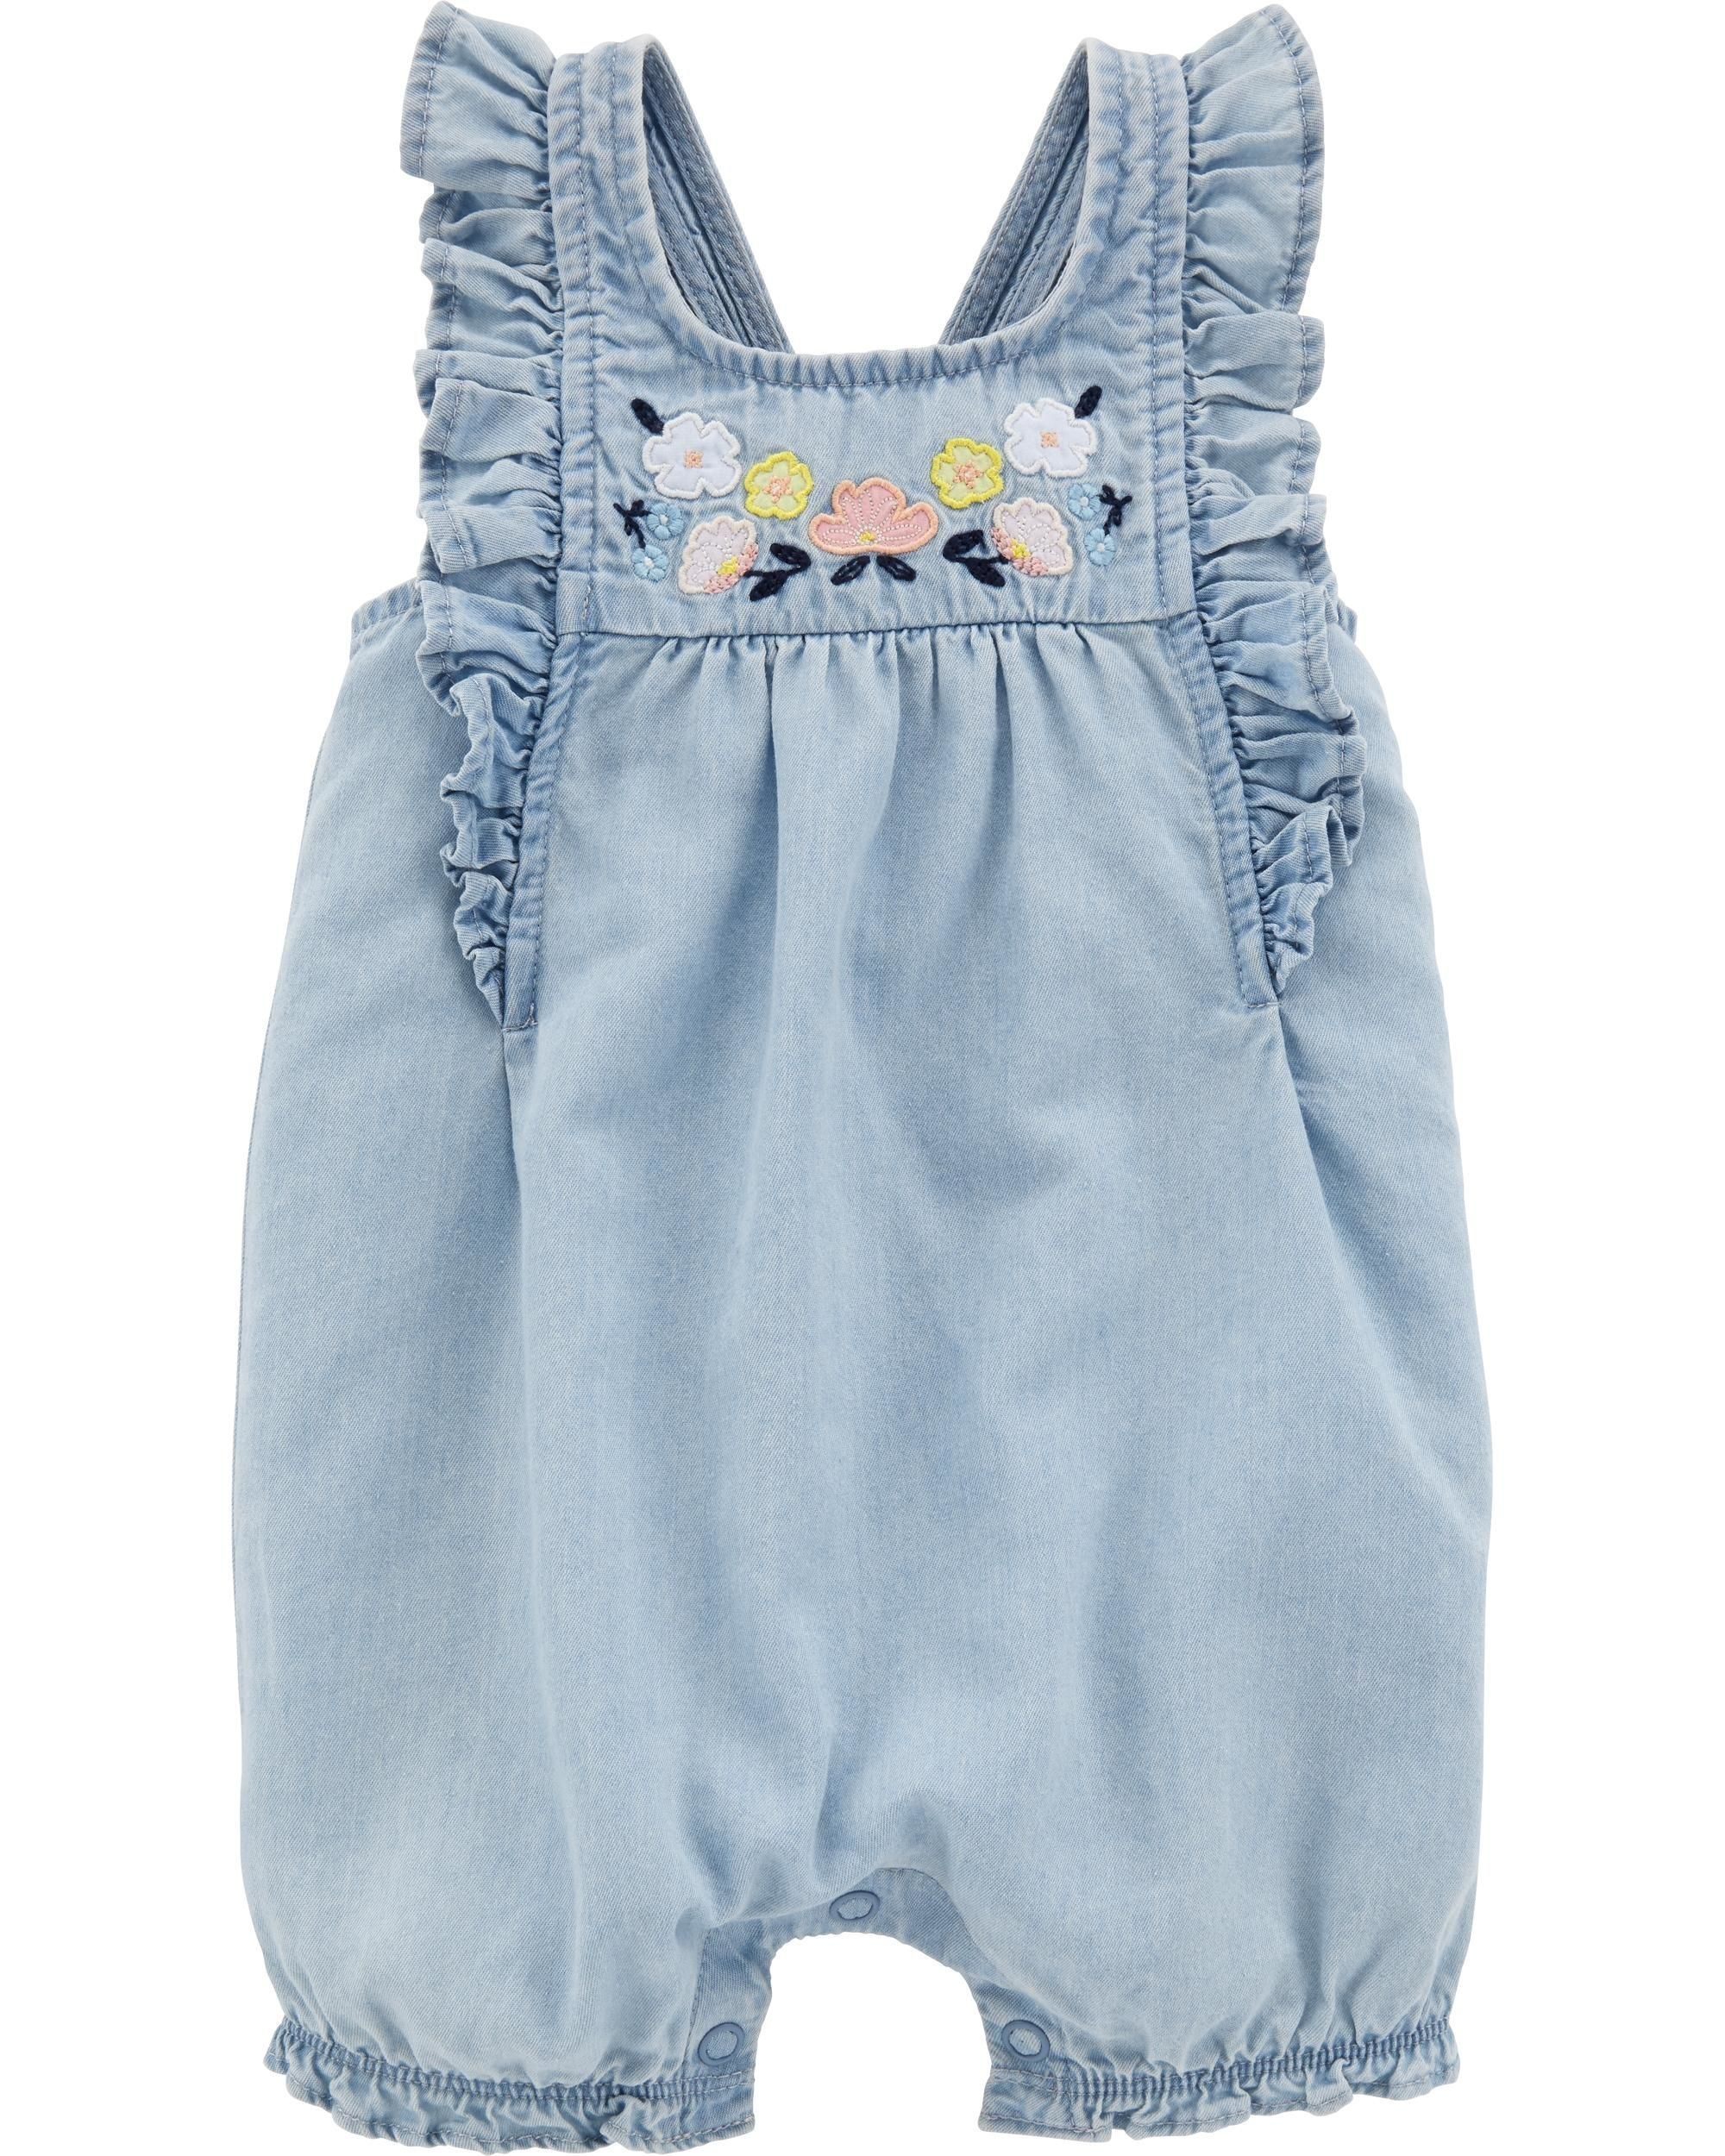 b4aec62ab Floral Chambray Romper | Future Baby 2 Girl: Clothes | Carters baby ...